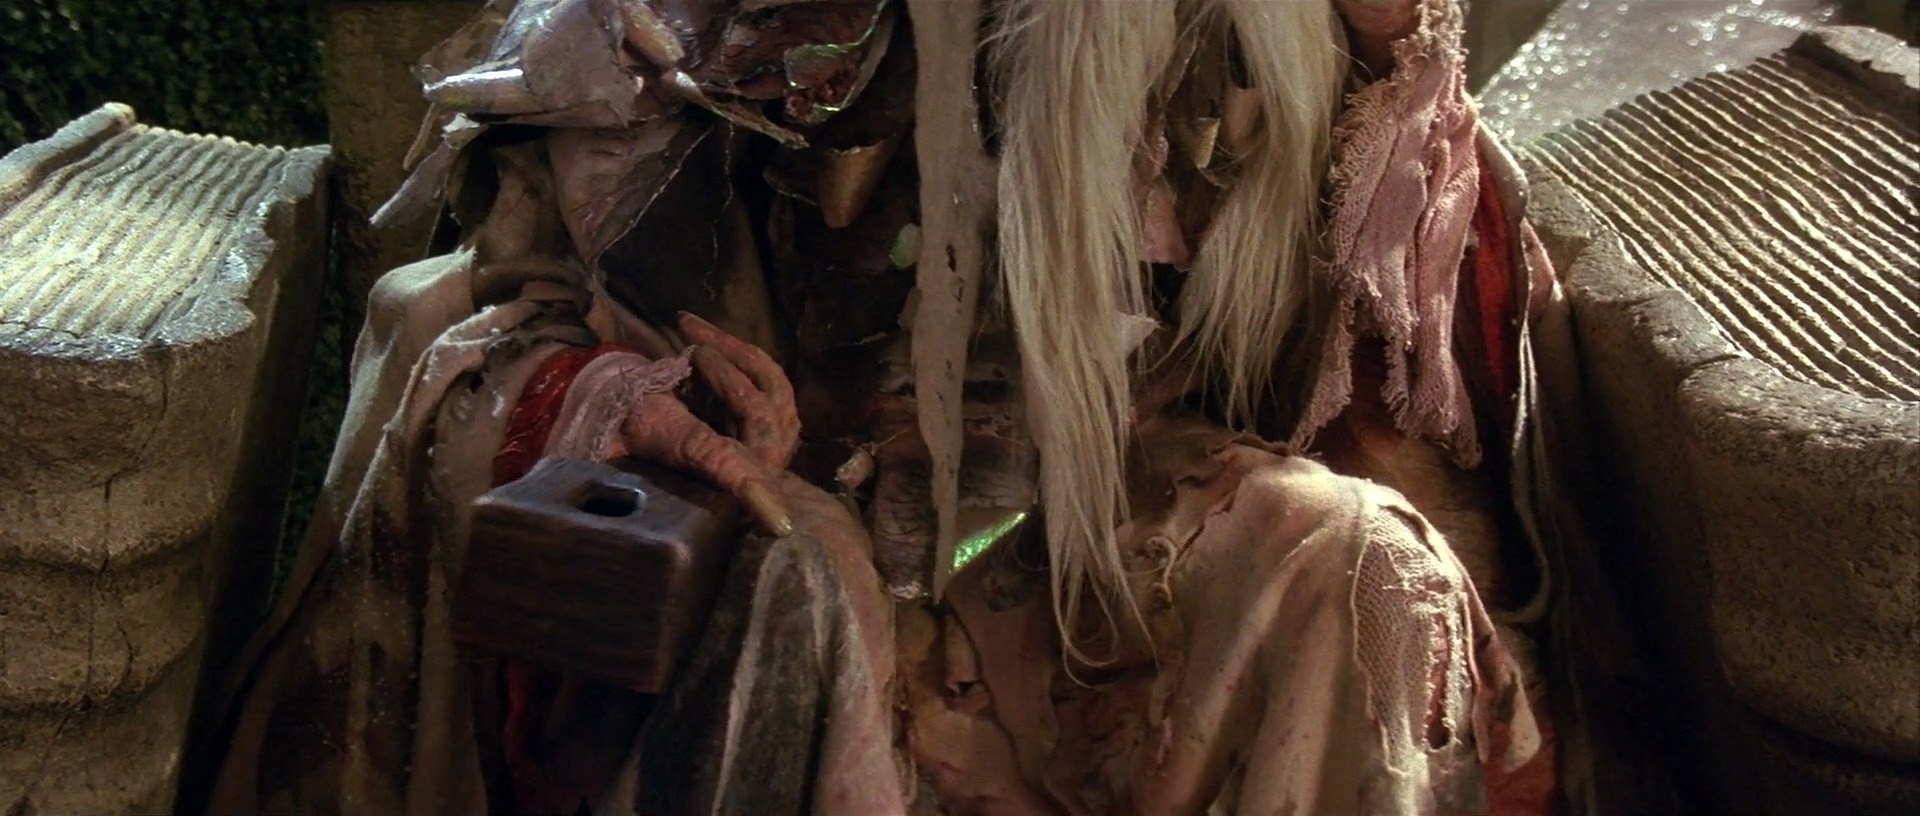 labyrinth-movie-screencaps.com-4534.jpg